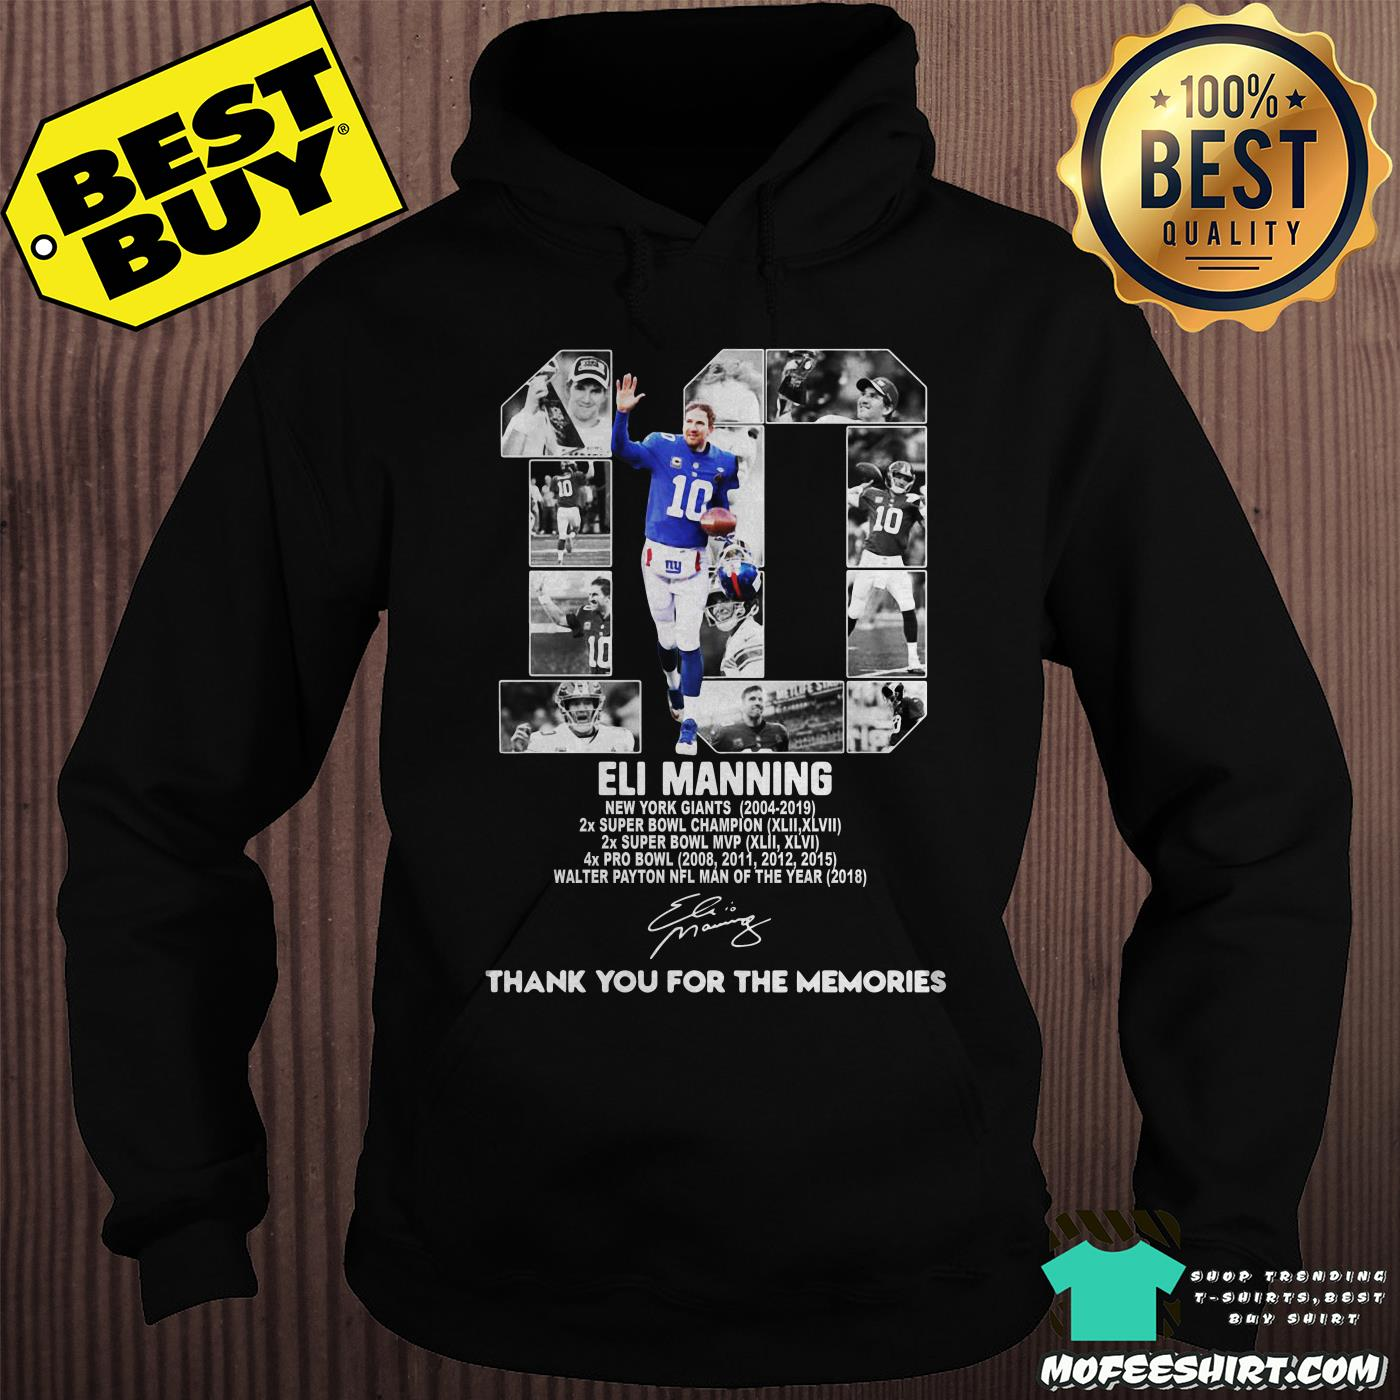 brand new 6dad0 7d4b7 [Sale 20%] Official 10 Eli Manning New York Giants 2004-2019 thank you for  the memories signatures shirt